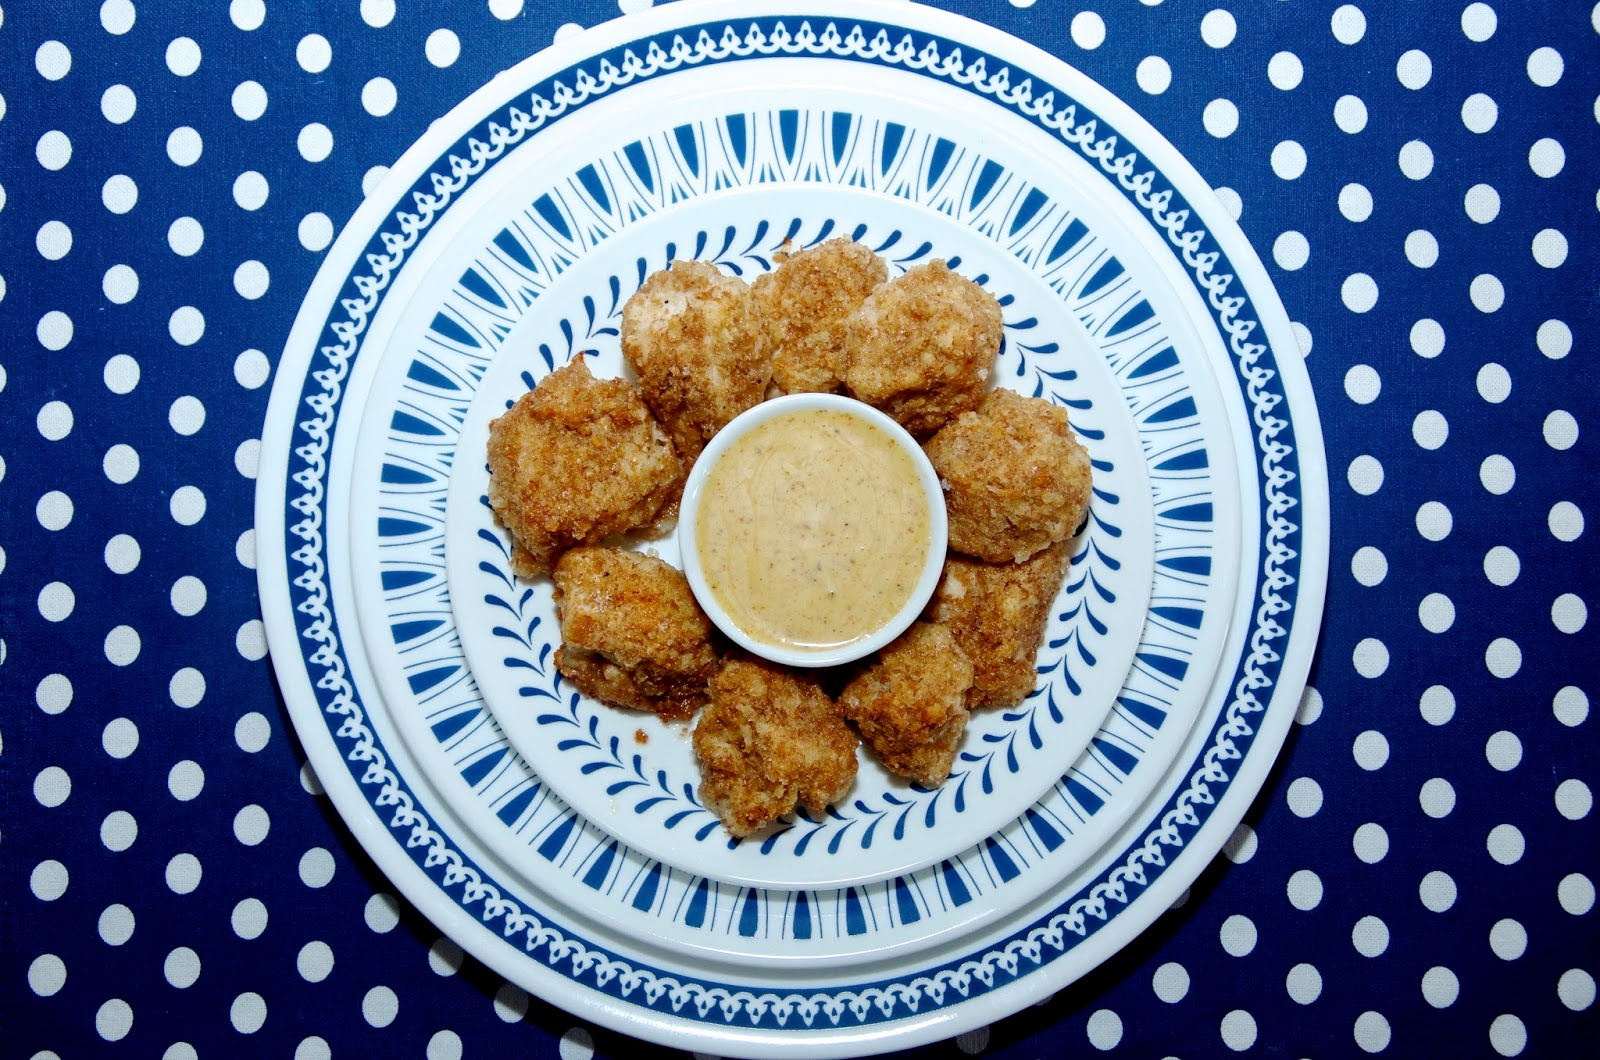 Chicken nuggets on Corelle blue and white plates with a Butlers polka dot placemat